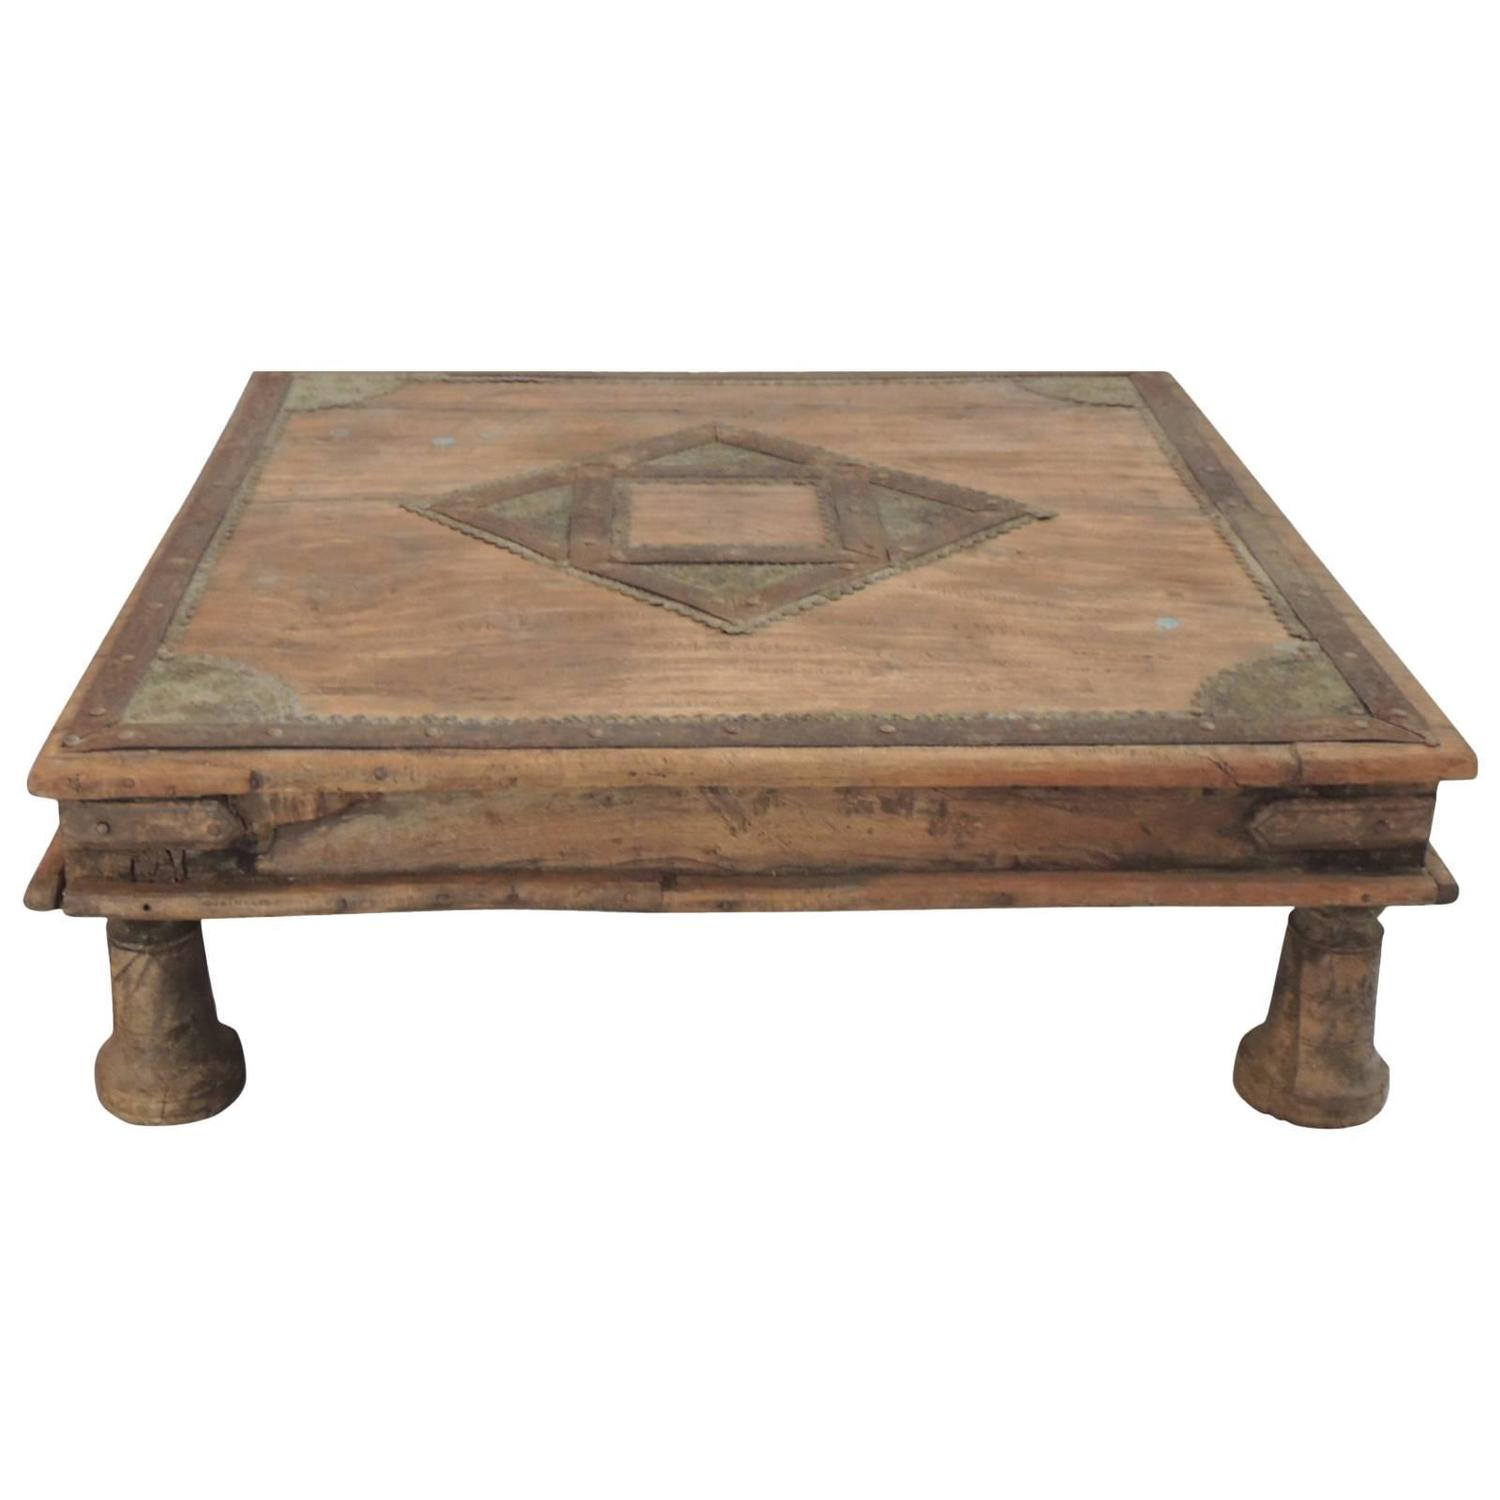 Indian low coffee table at 1stdibs for Low end table